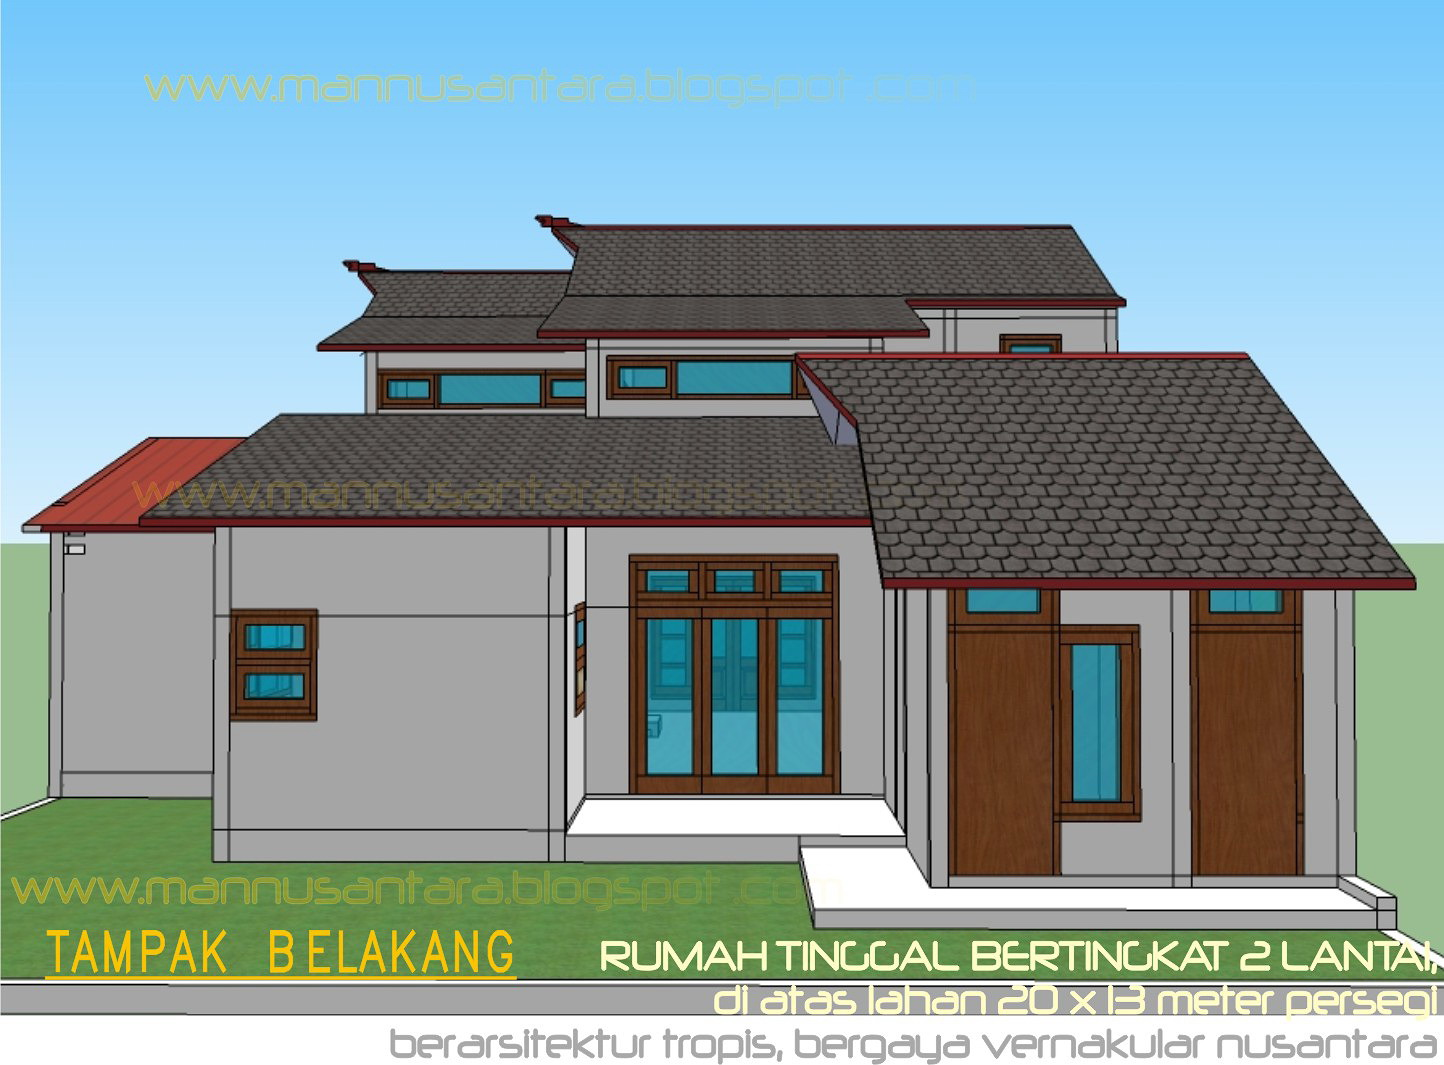 ManNusantara Design Indonesia: Rancangan Rumah Tinggal ...